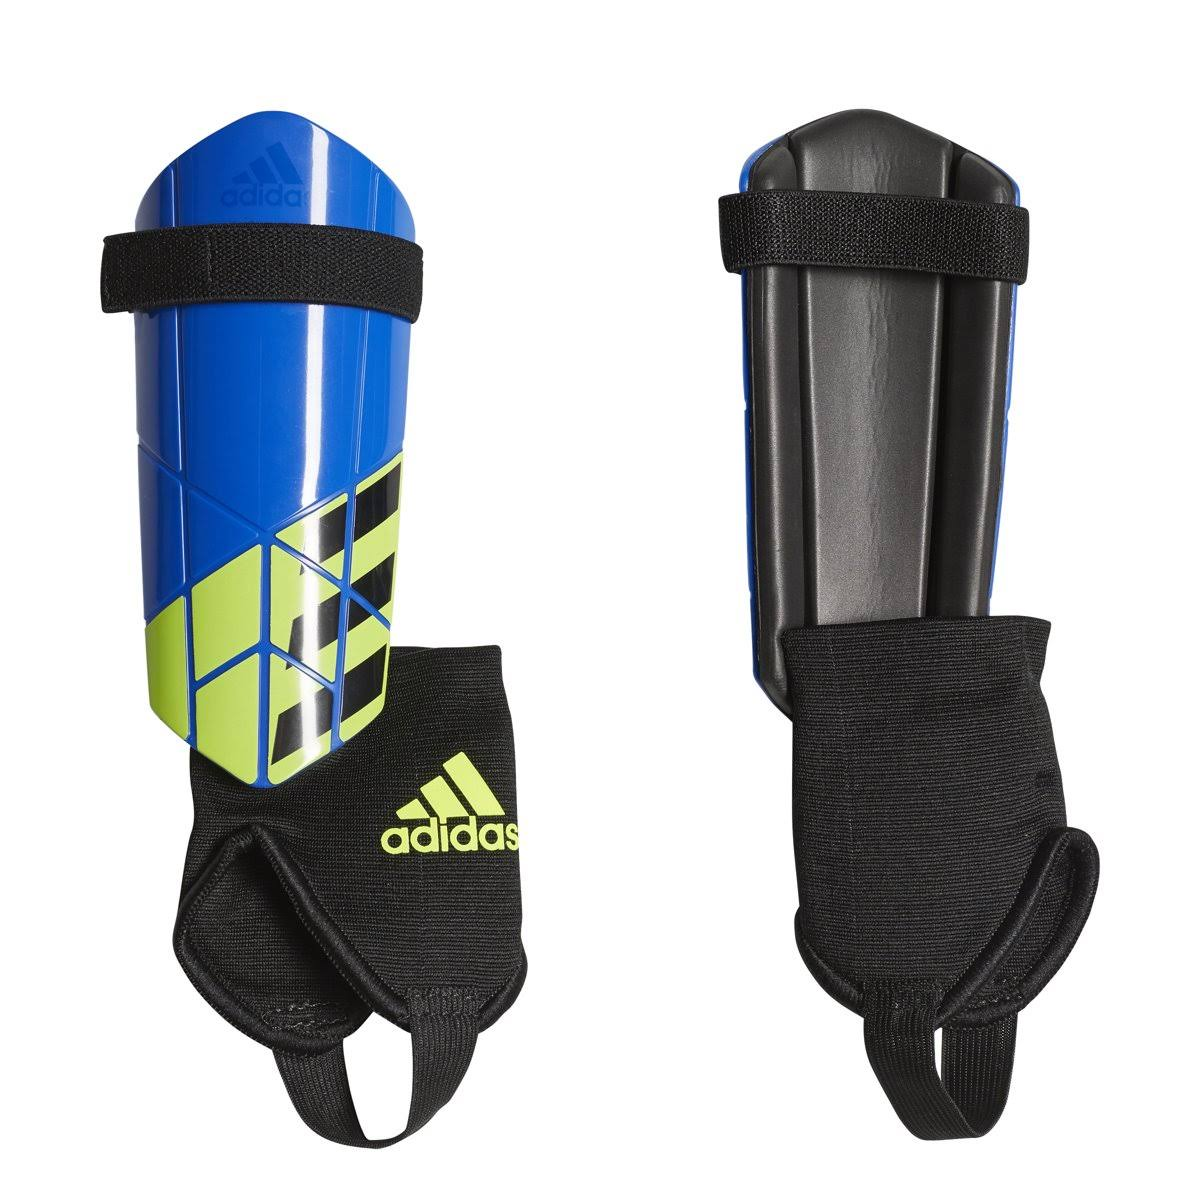 Adidas Youth x Shin Guards Blue / Medium